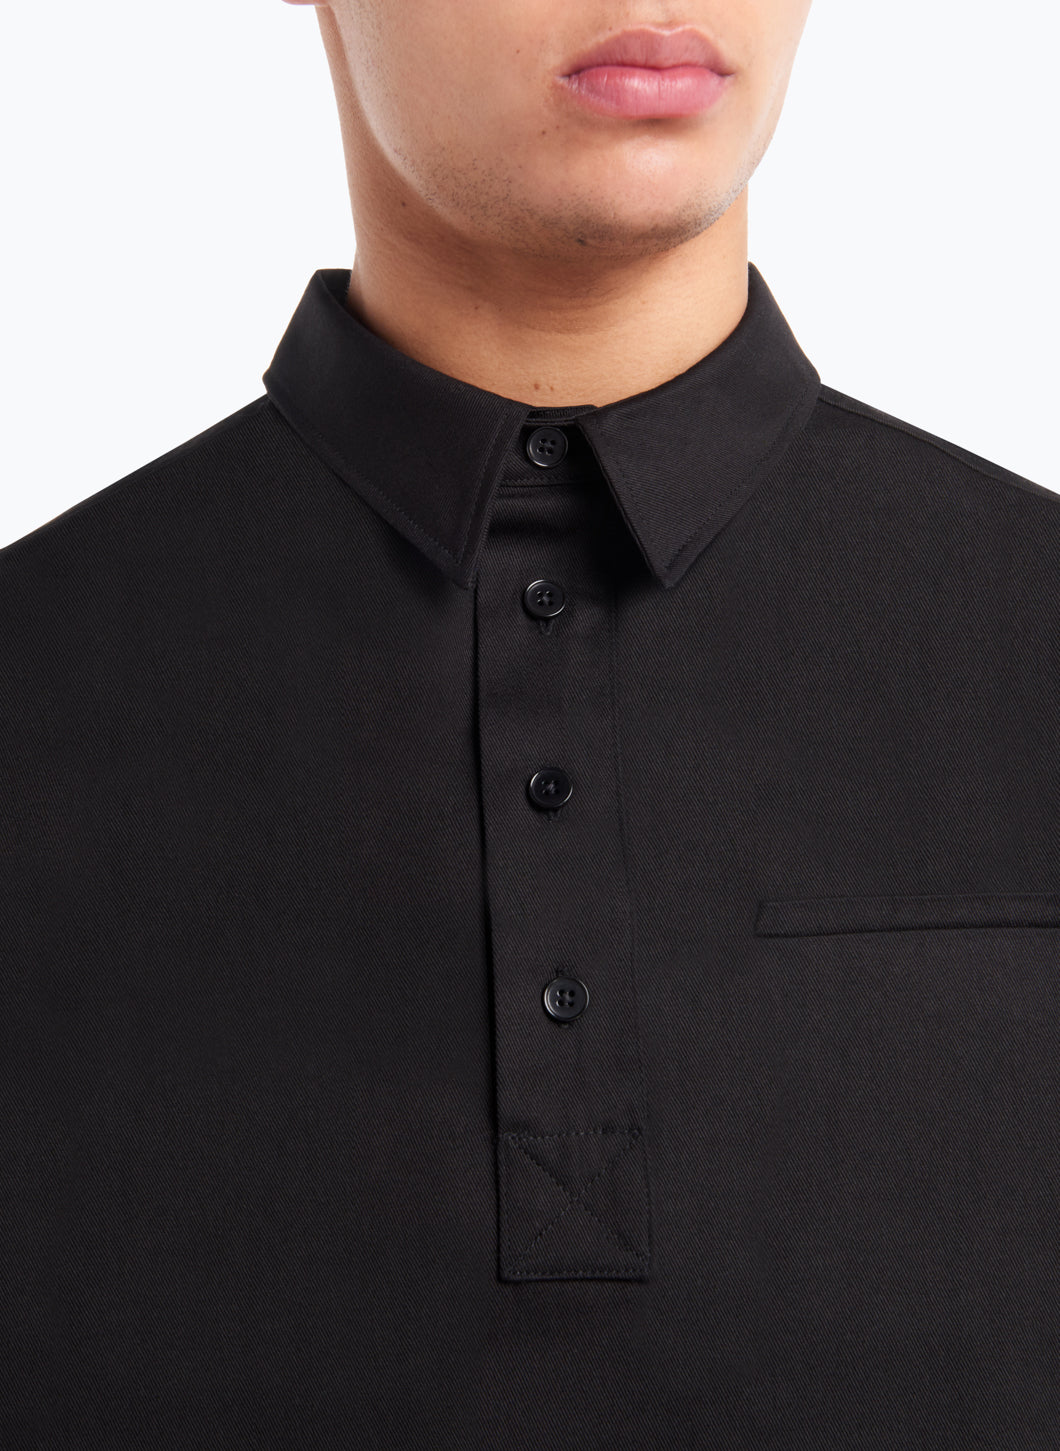 Short Sleeve Poloshirt in Black Gabardine